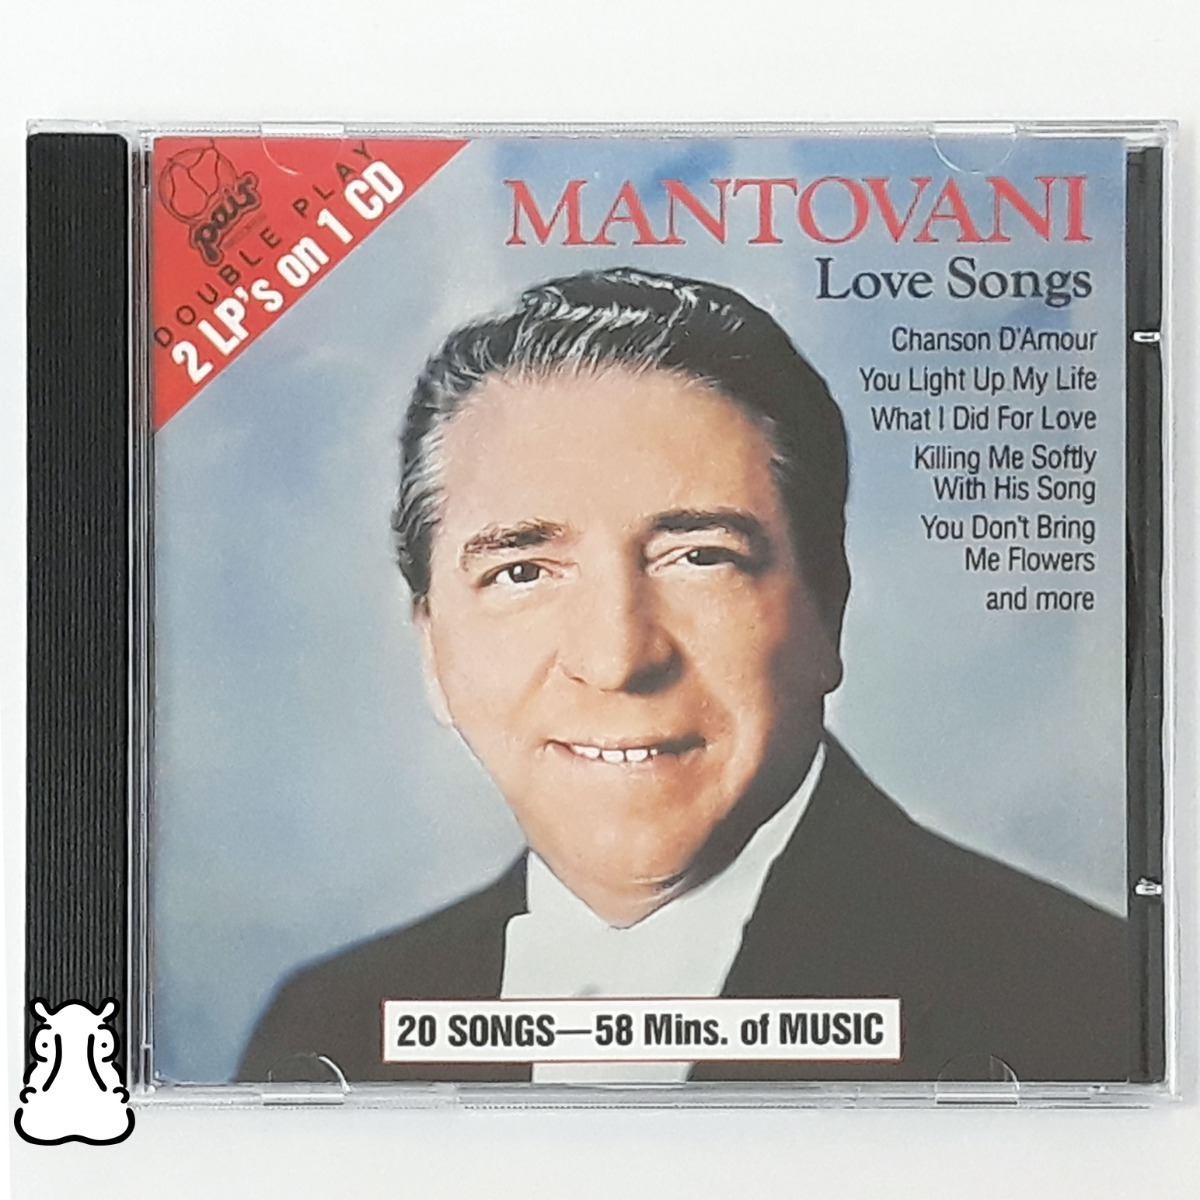 Hipmusic Cd The Mantovani Orchestra Love Songs Chanson D Amour R 25 00